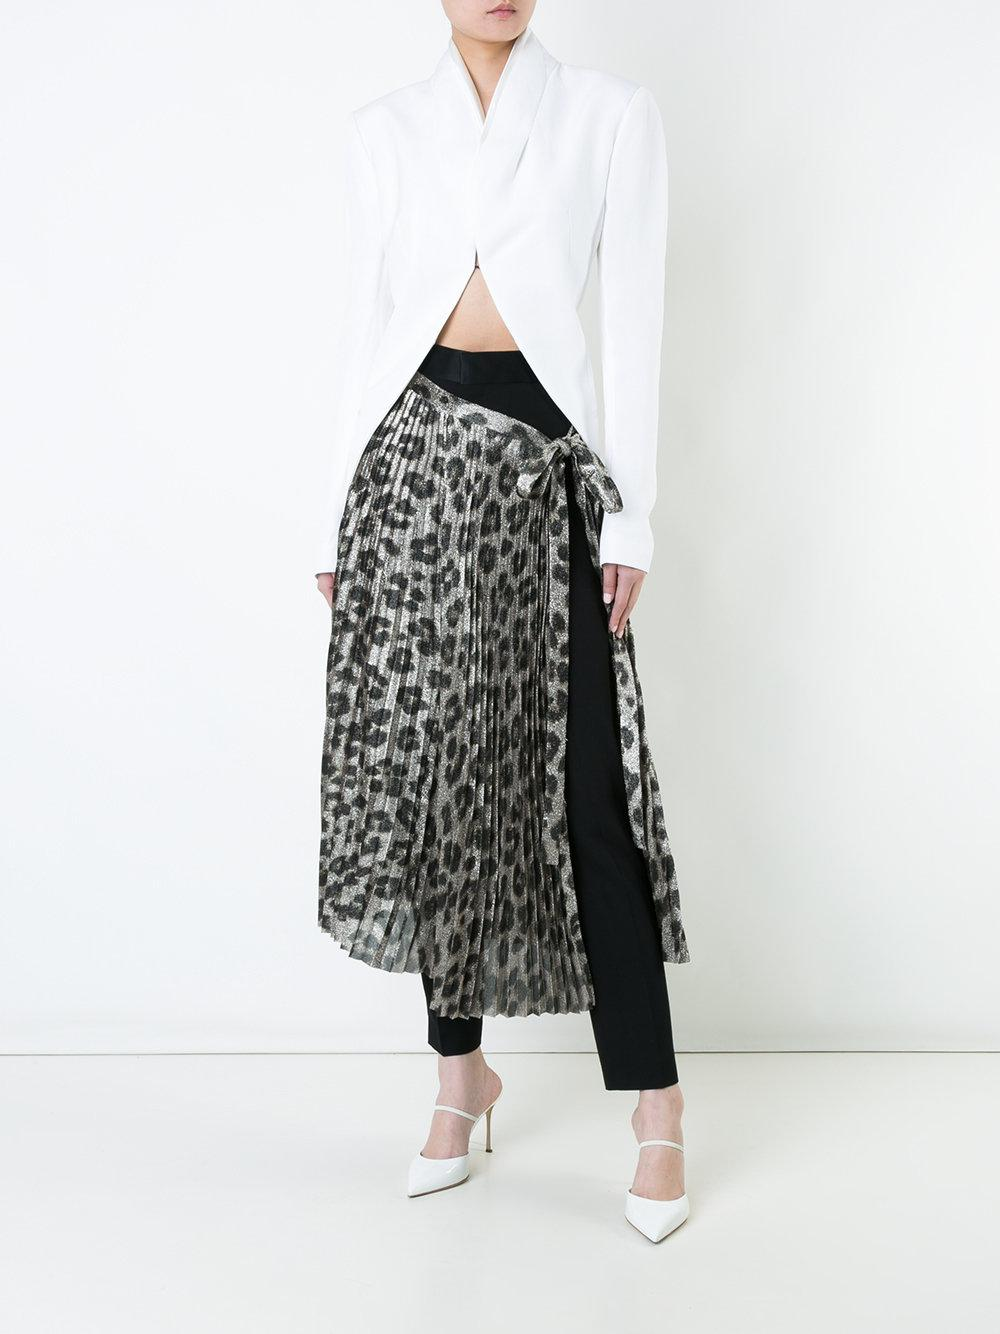 Haider Ackermann Silk Leopard Print Pleated Skirt in Metallic